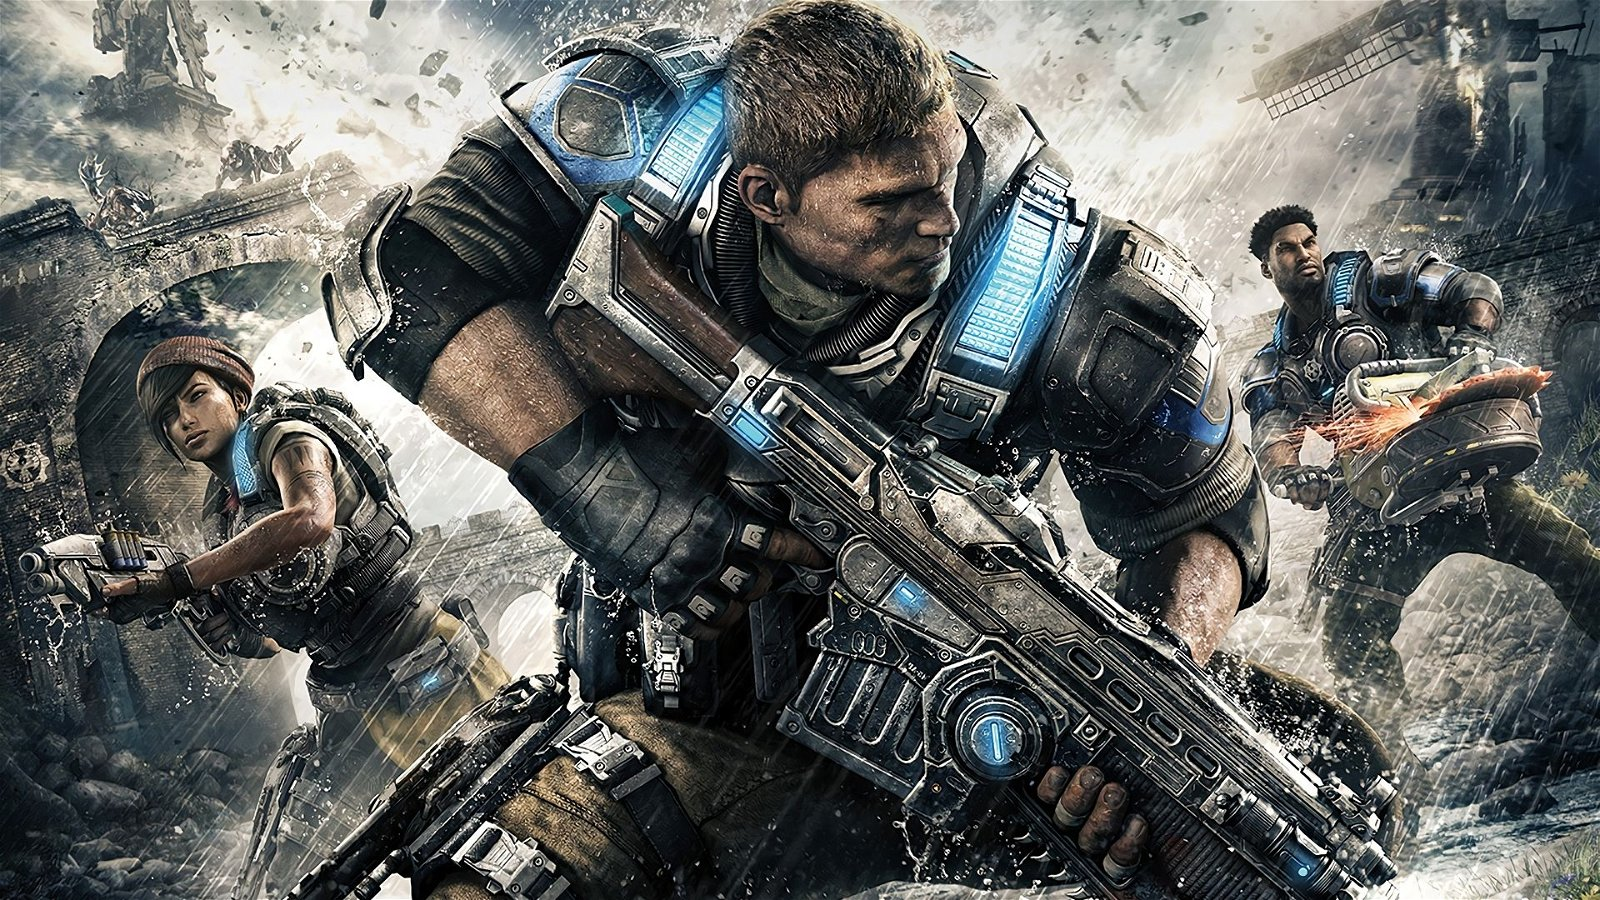 gears-of-war-4-xbox-one-review-10.jpg